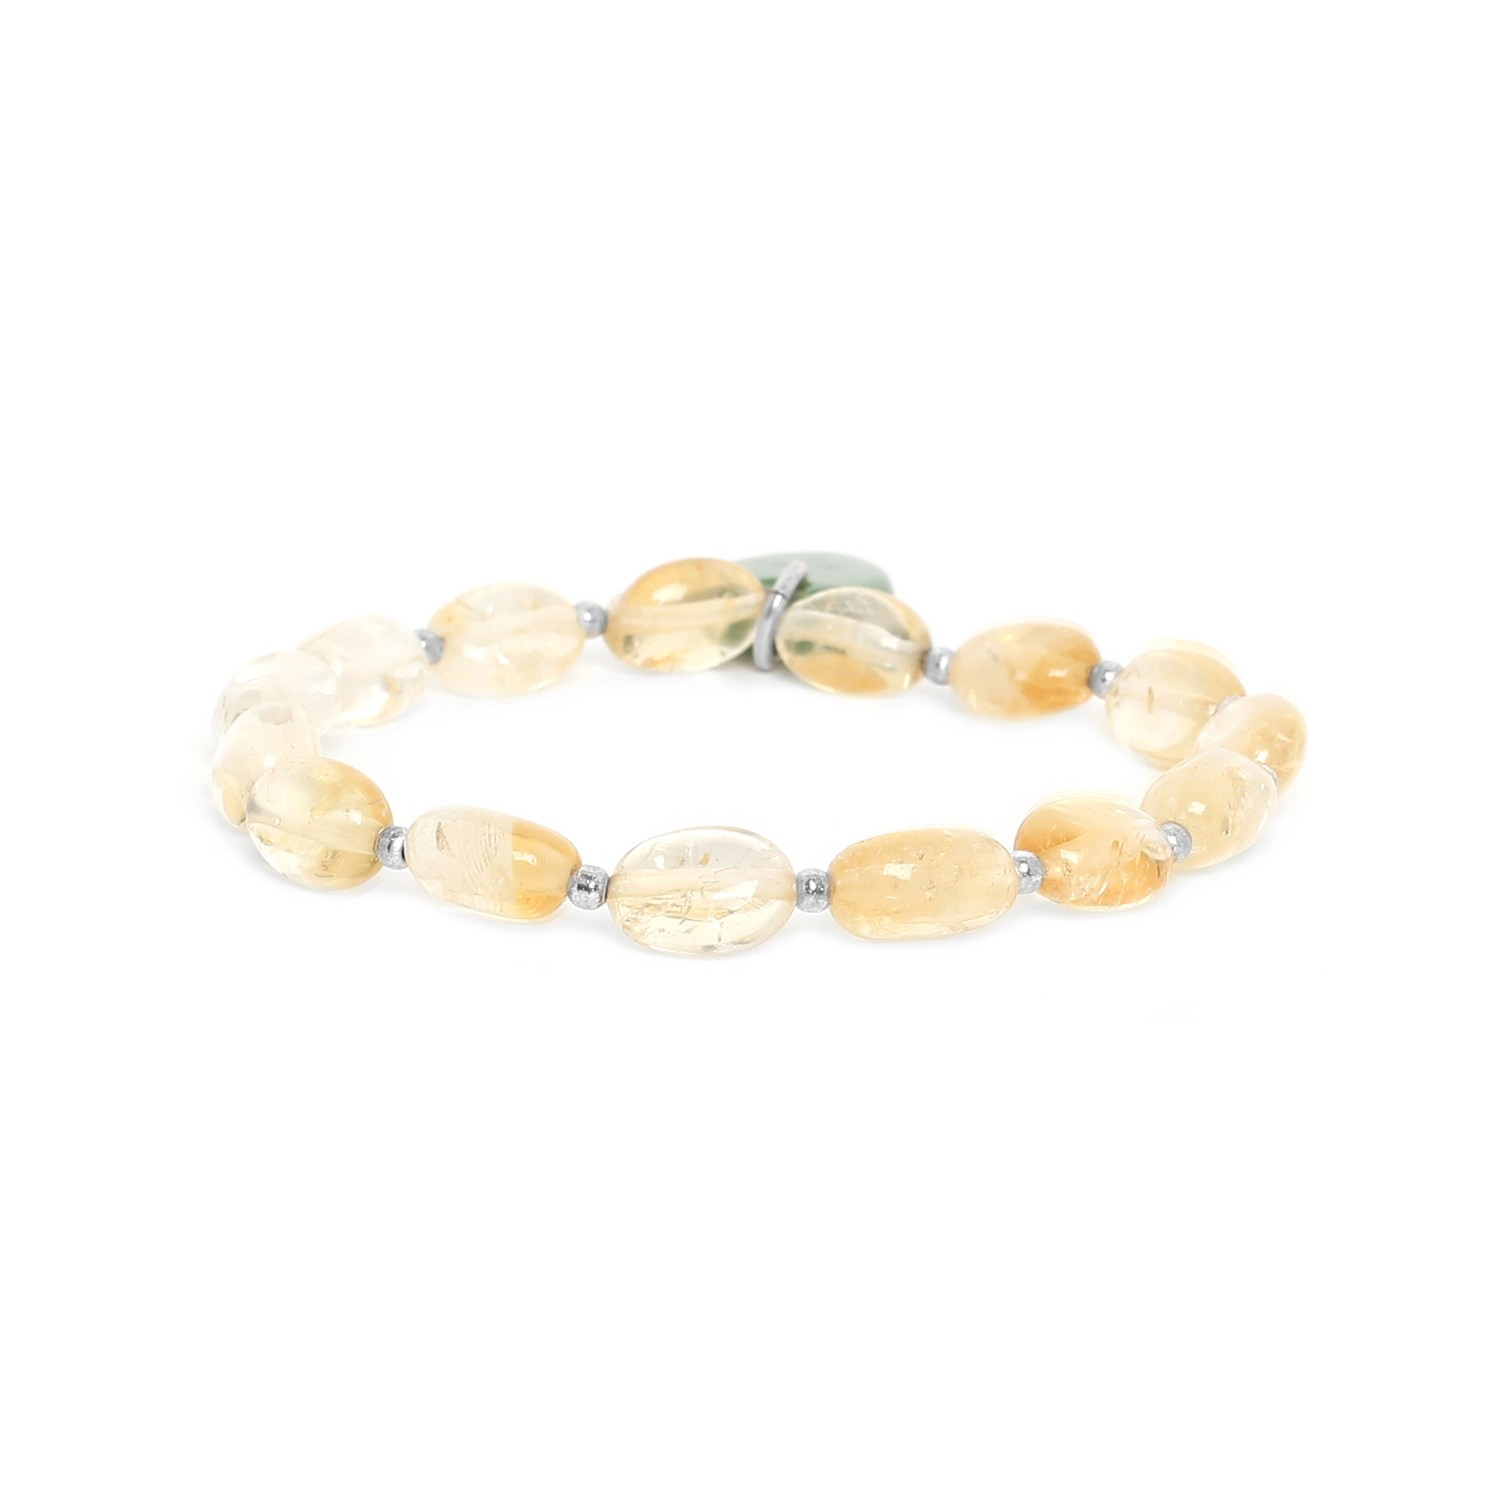 CITRUS citrin stretch bracelet